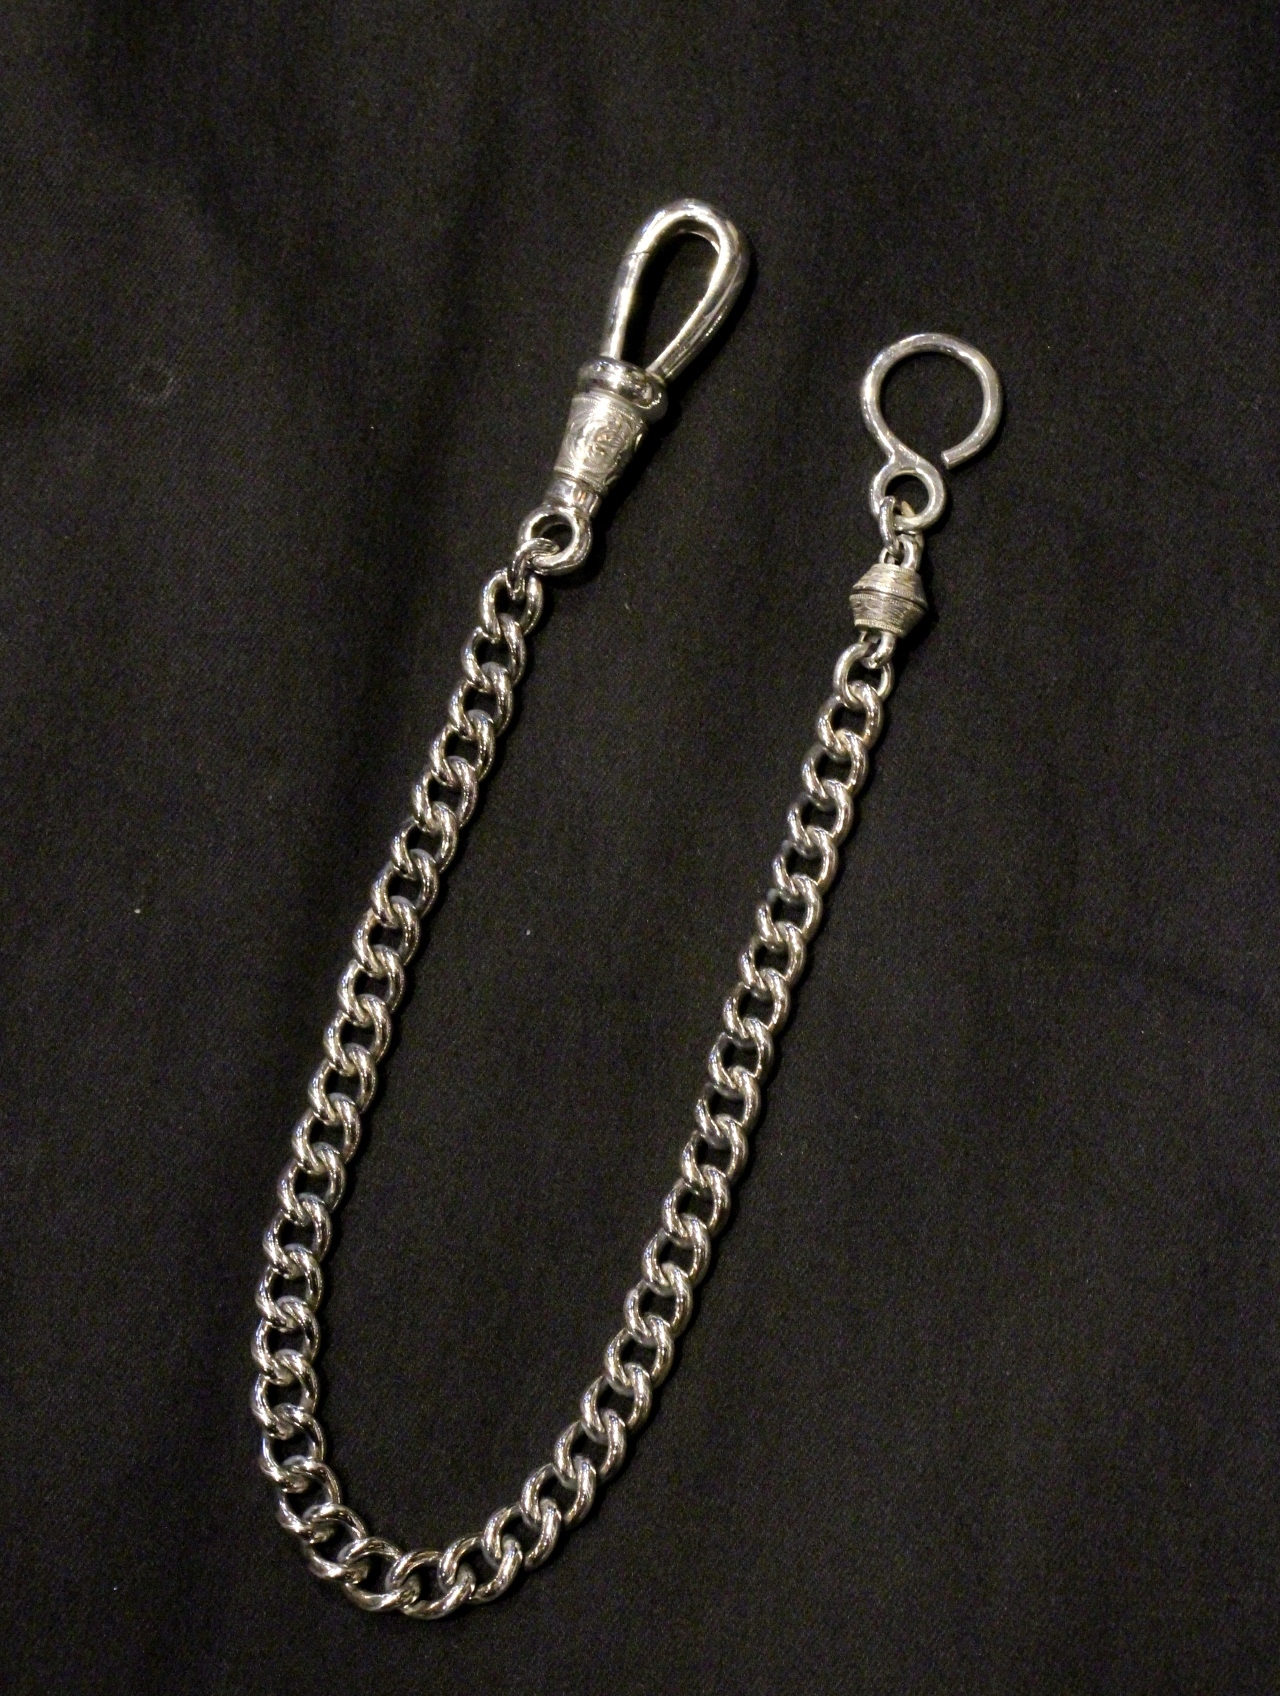 ANTIDOTE BUYERS CLUB by Cootie Productions  「Classic Narrow Wallet Chain」 SILVER950製 ウォレットチェーン